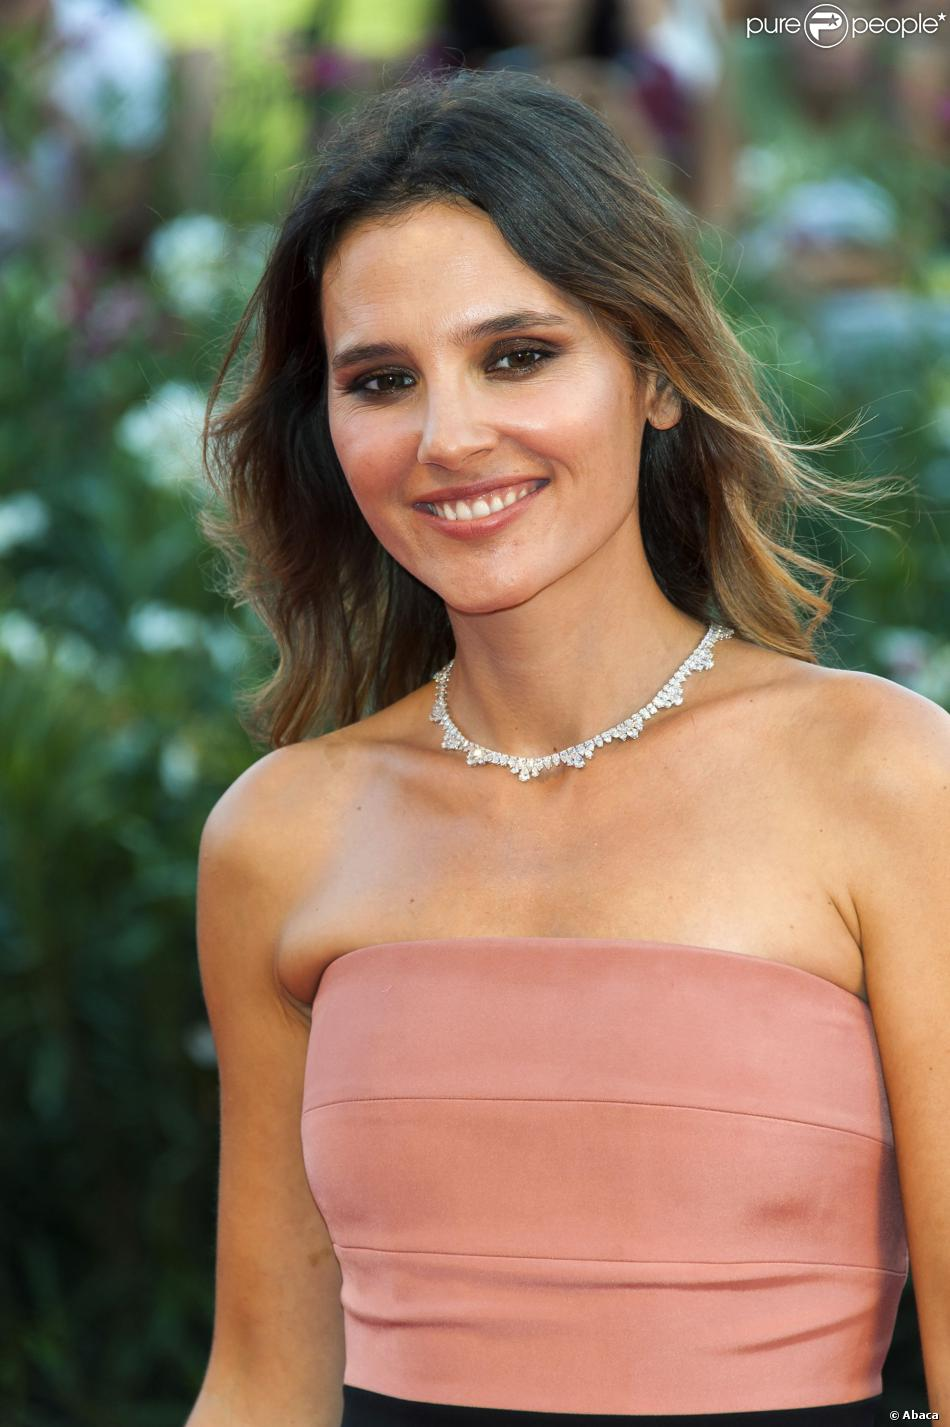 Virginie Ledoyen earned a  million dollar salary - leaving the net worth at 6 million in 2017